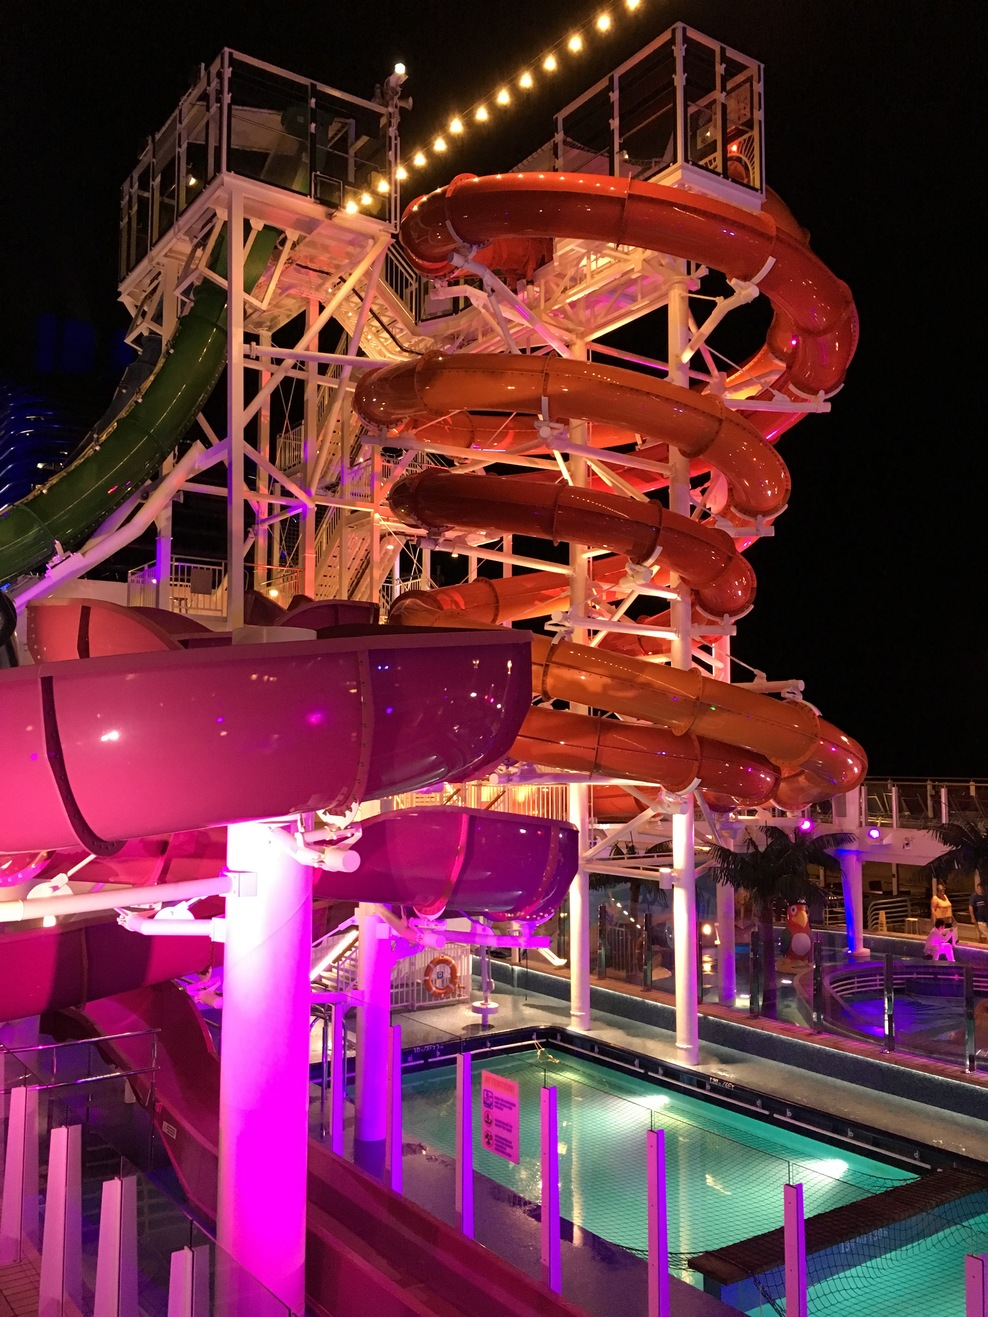 Water slides and pool at night.